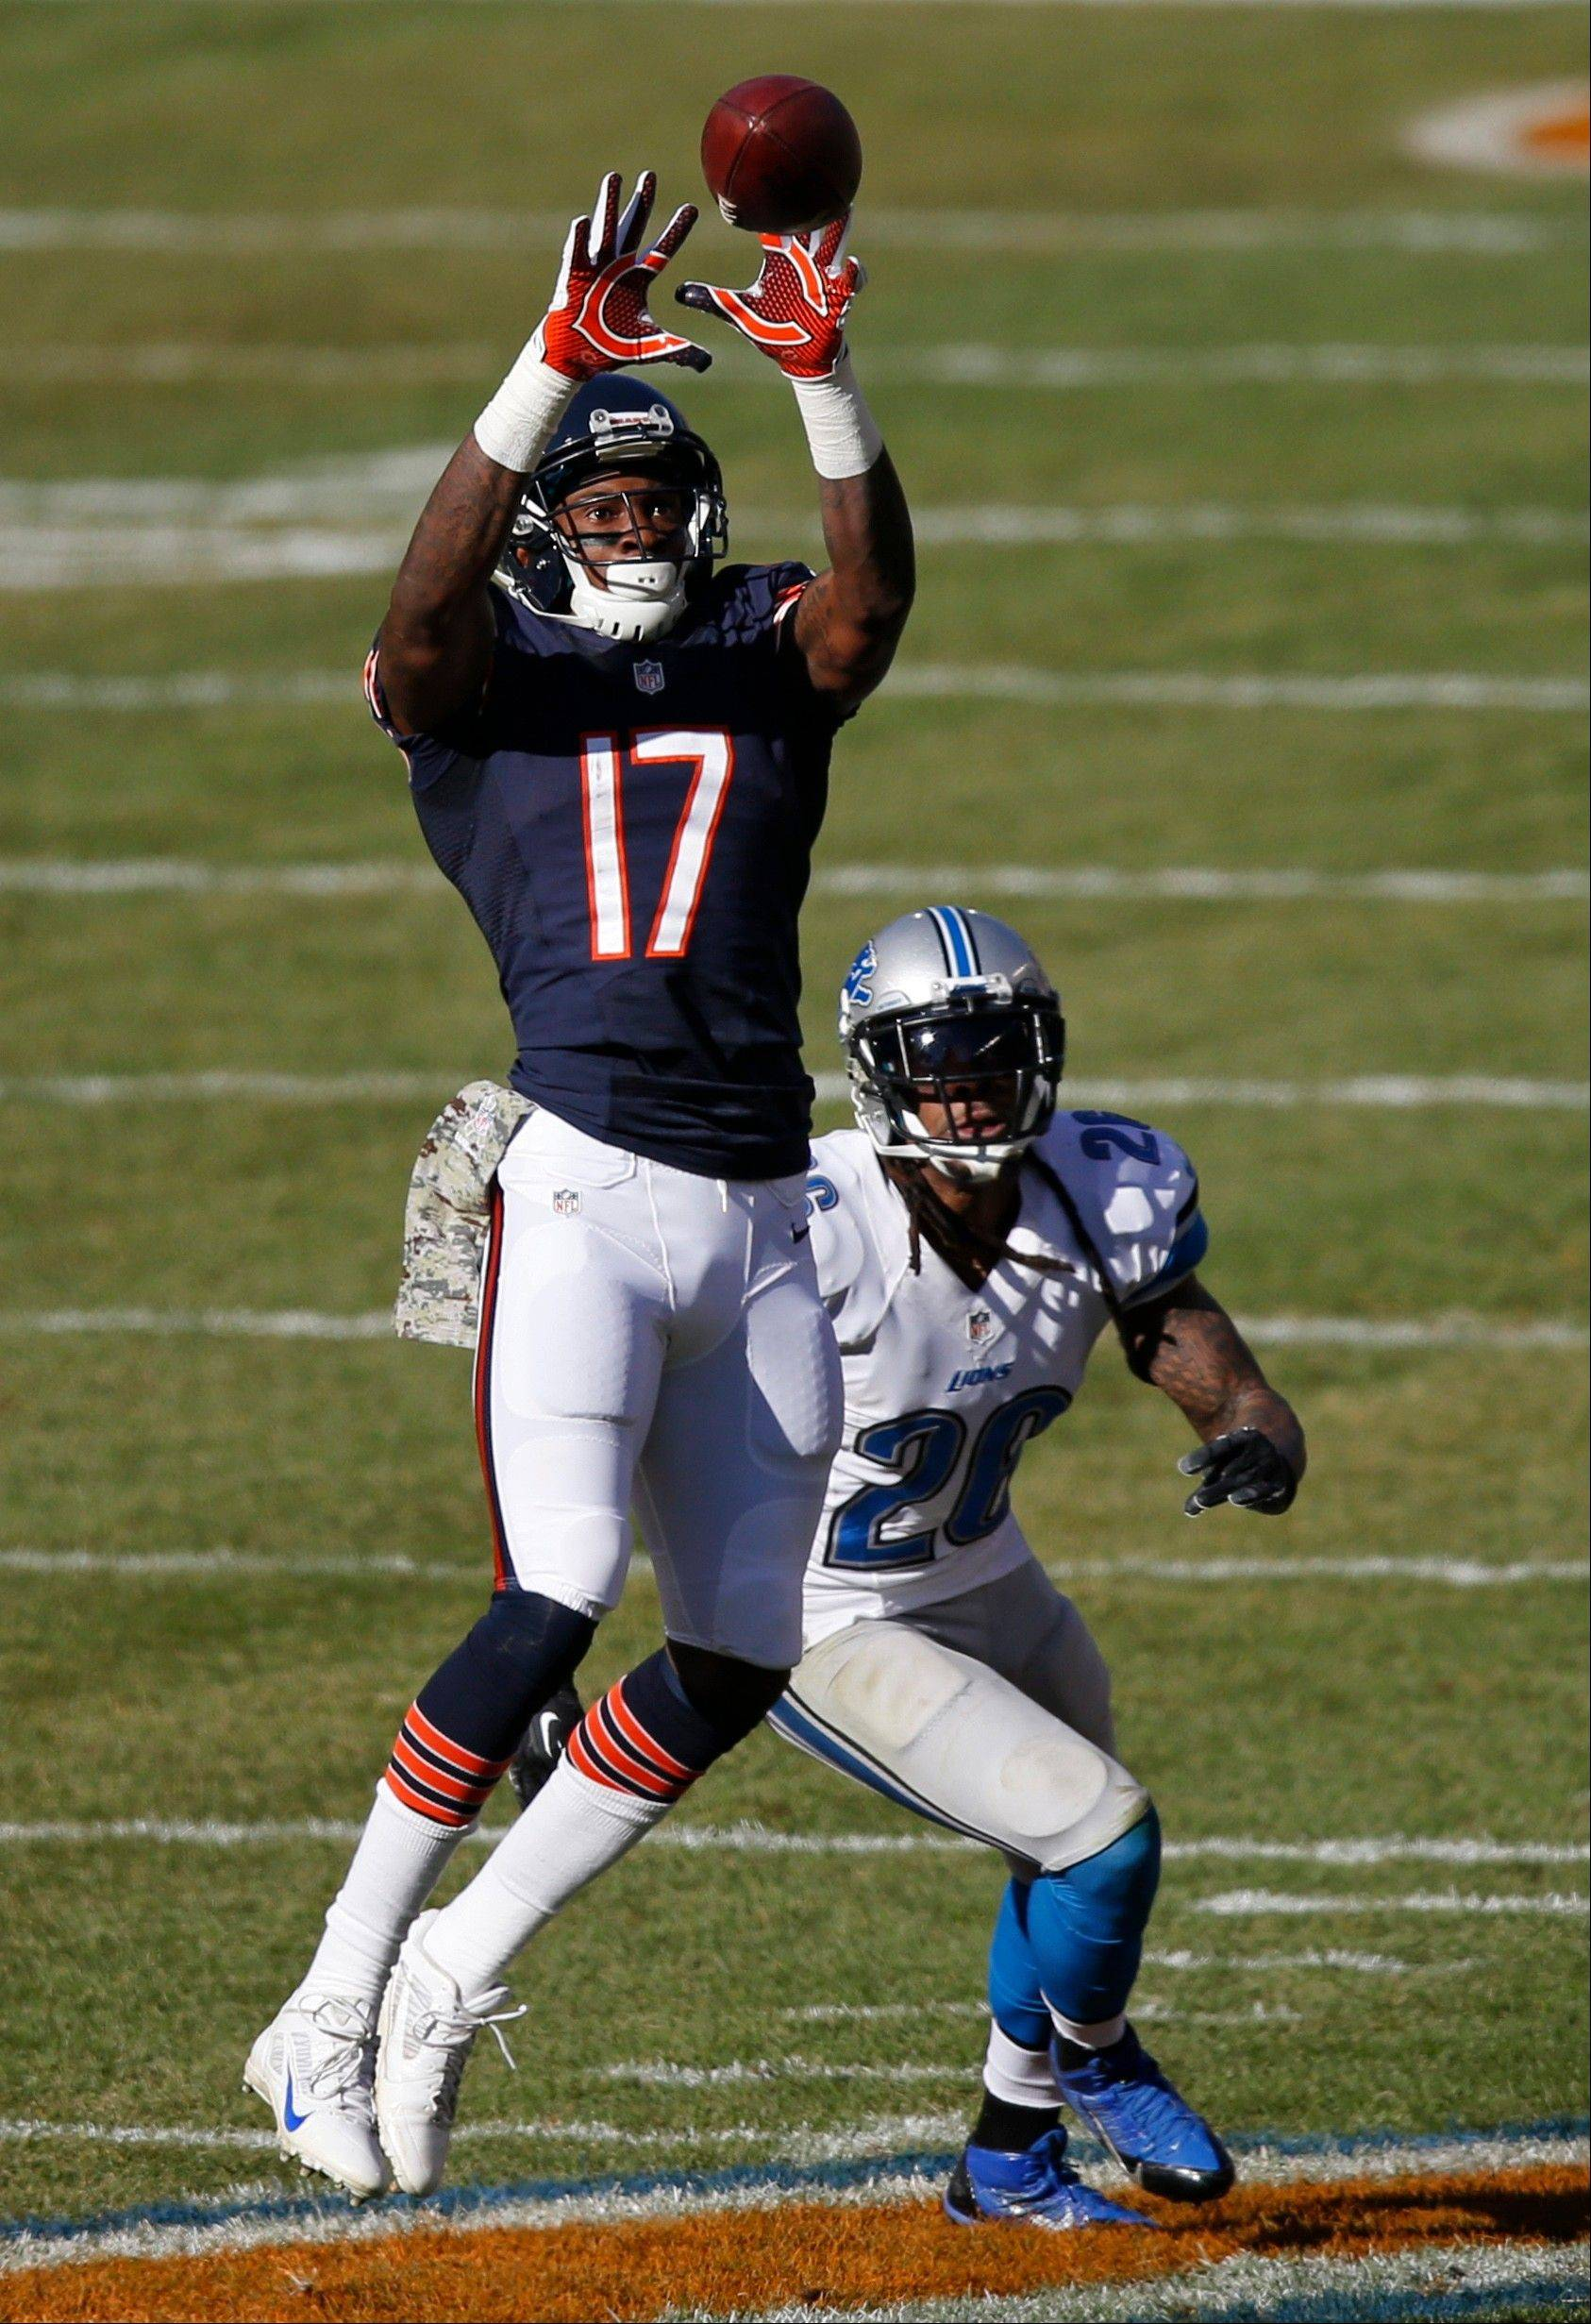 Bears wide receiver Alshon Jeffery (17) makes a catch in front of Detroit Lions safety Louis Delmas (26) during the first half of an NFL football game, Sunday, Nov. 10, 2013, in Chicago.